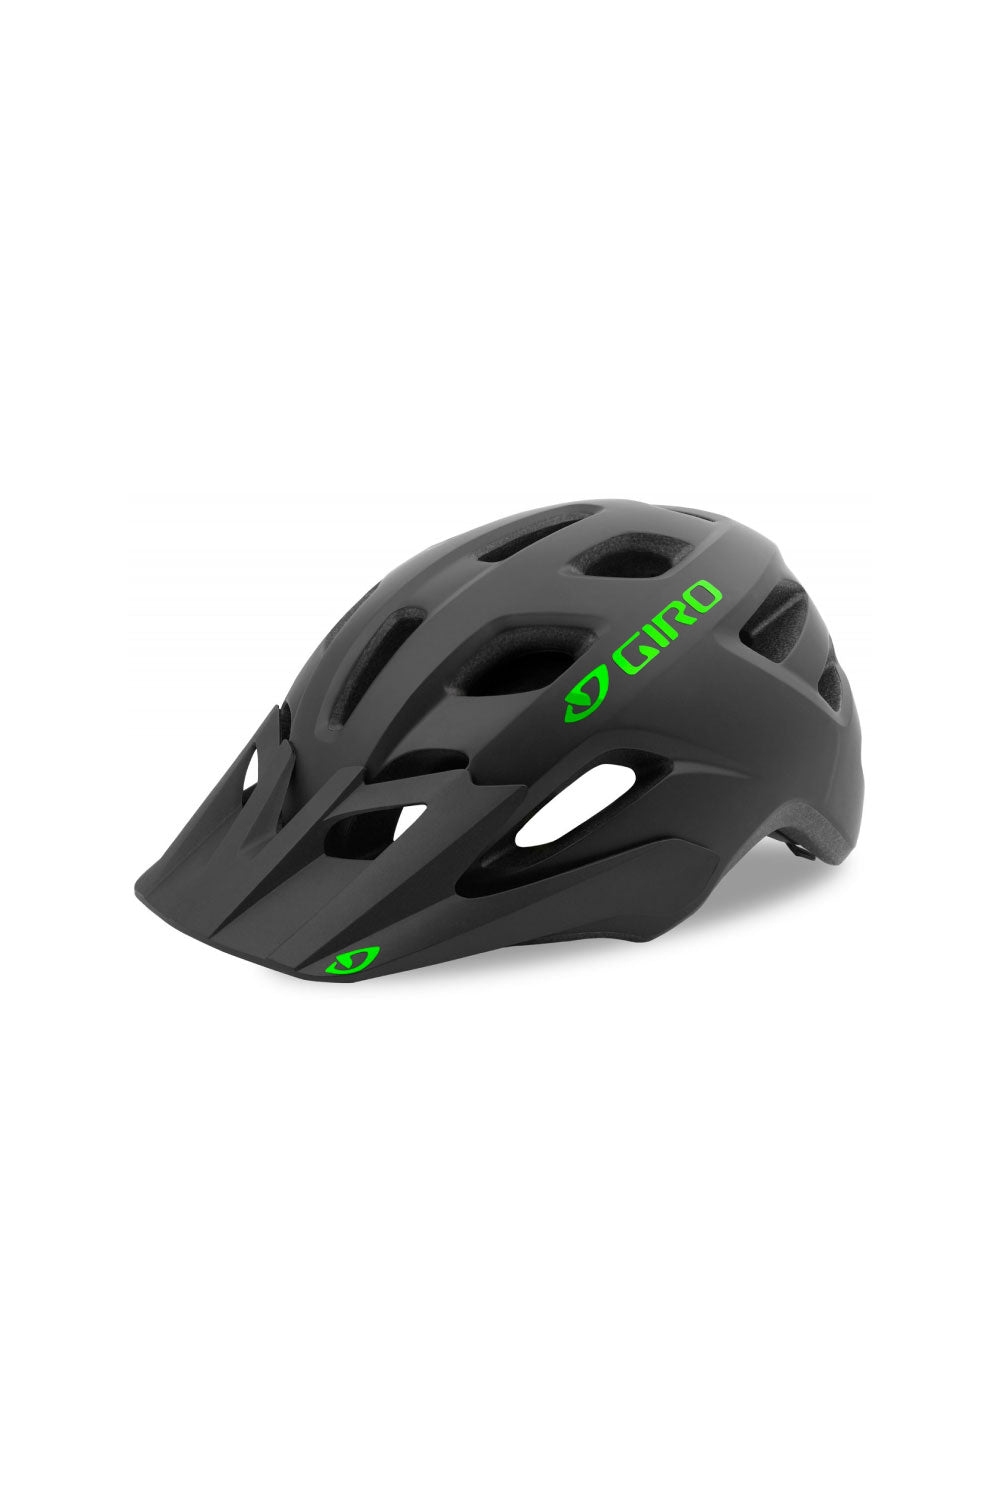 GIRO Tremor Kids Mountain Bike Helmet